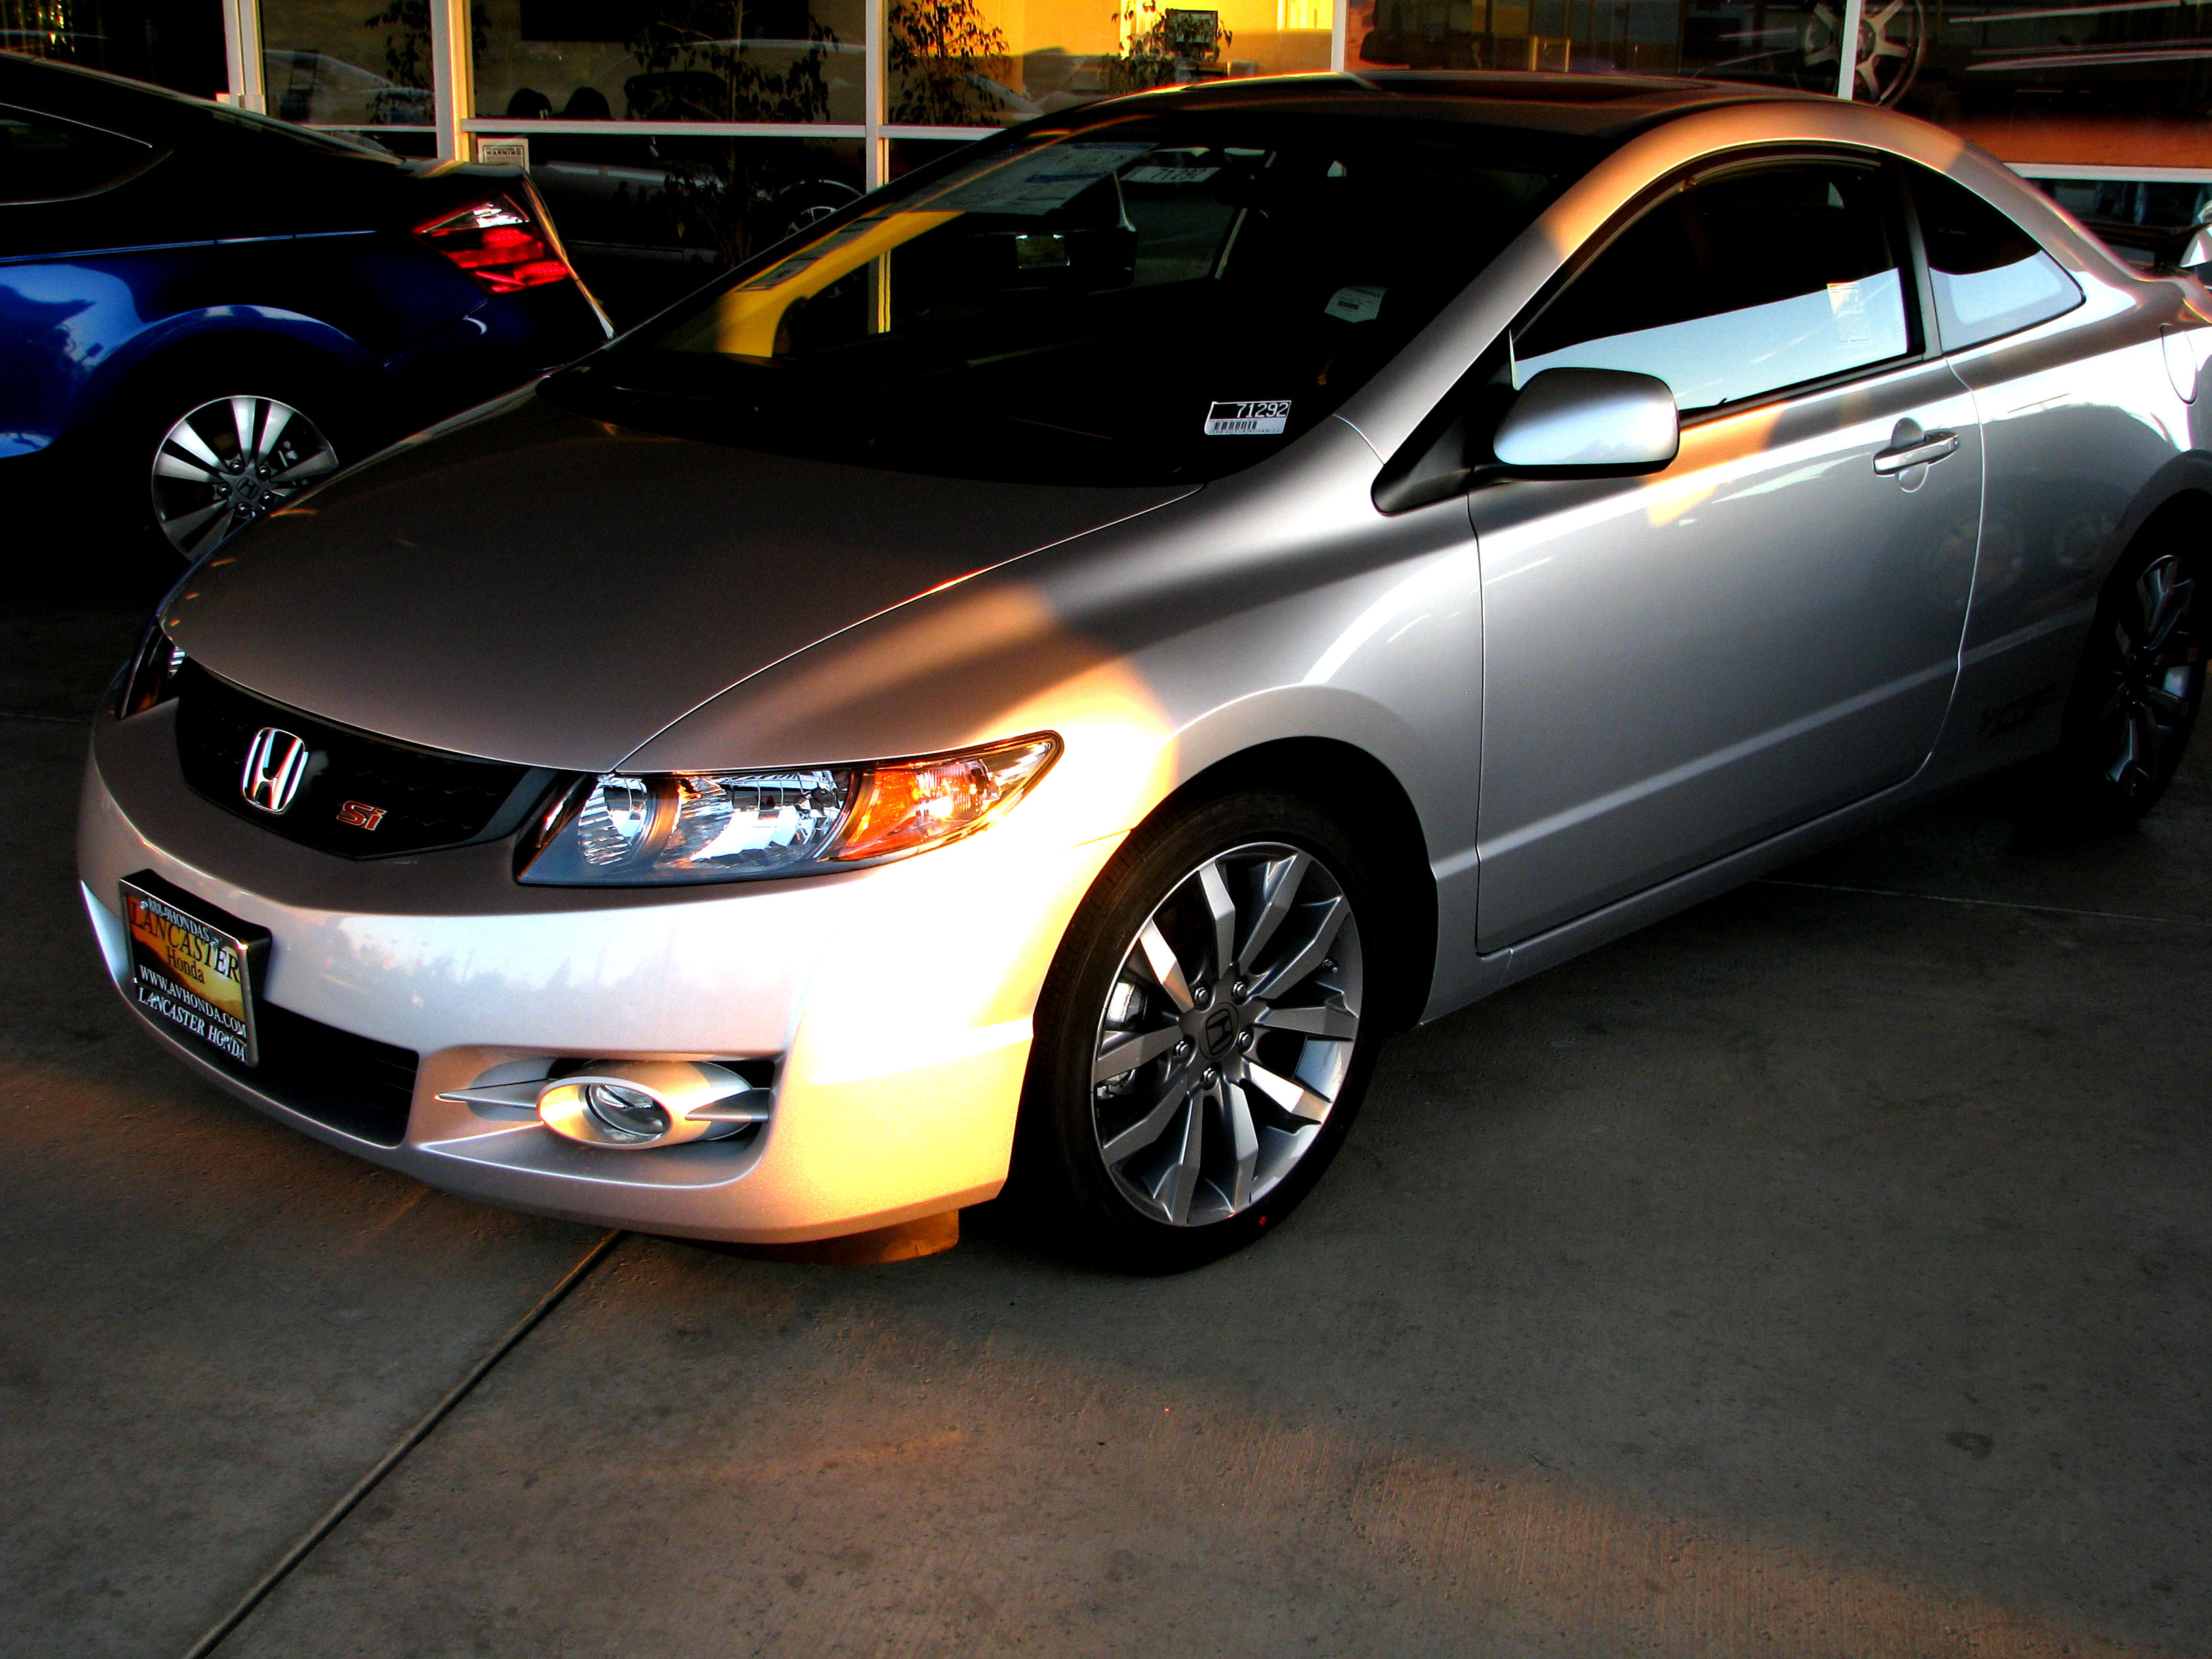 Lovely File:2009 Honda Civic Coupe (2955585780)